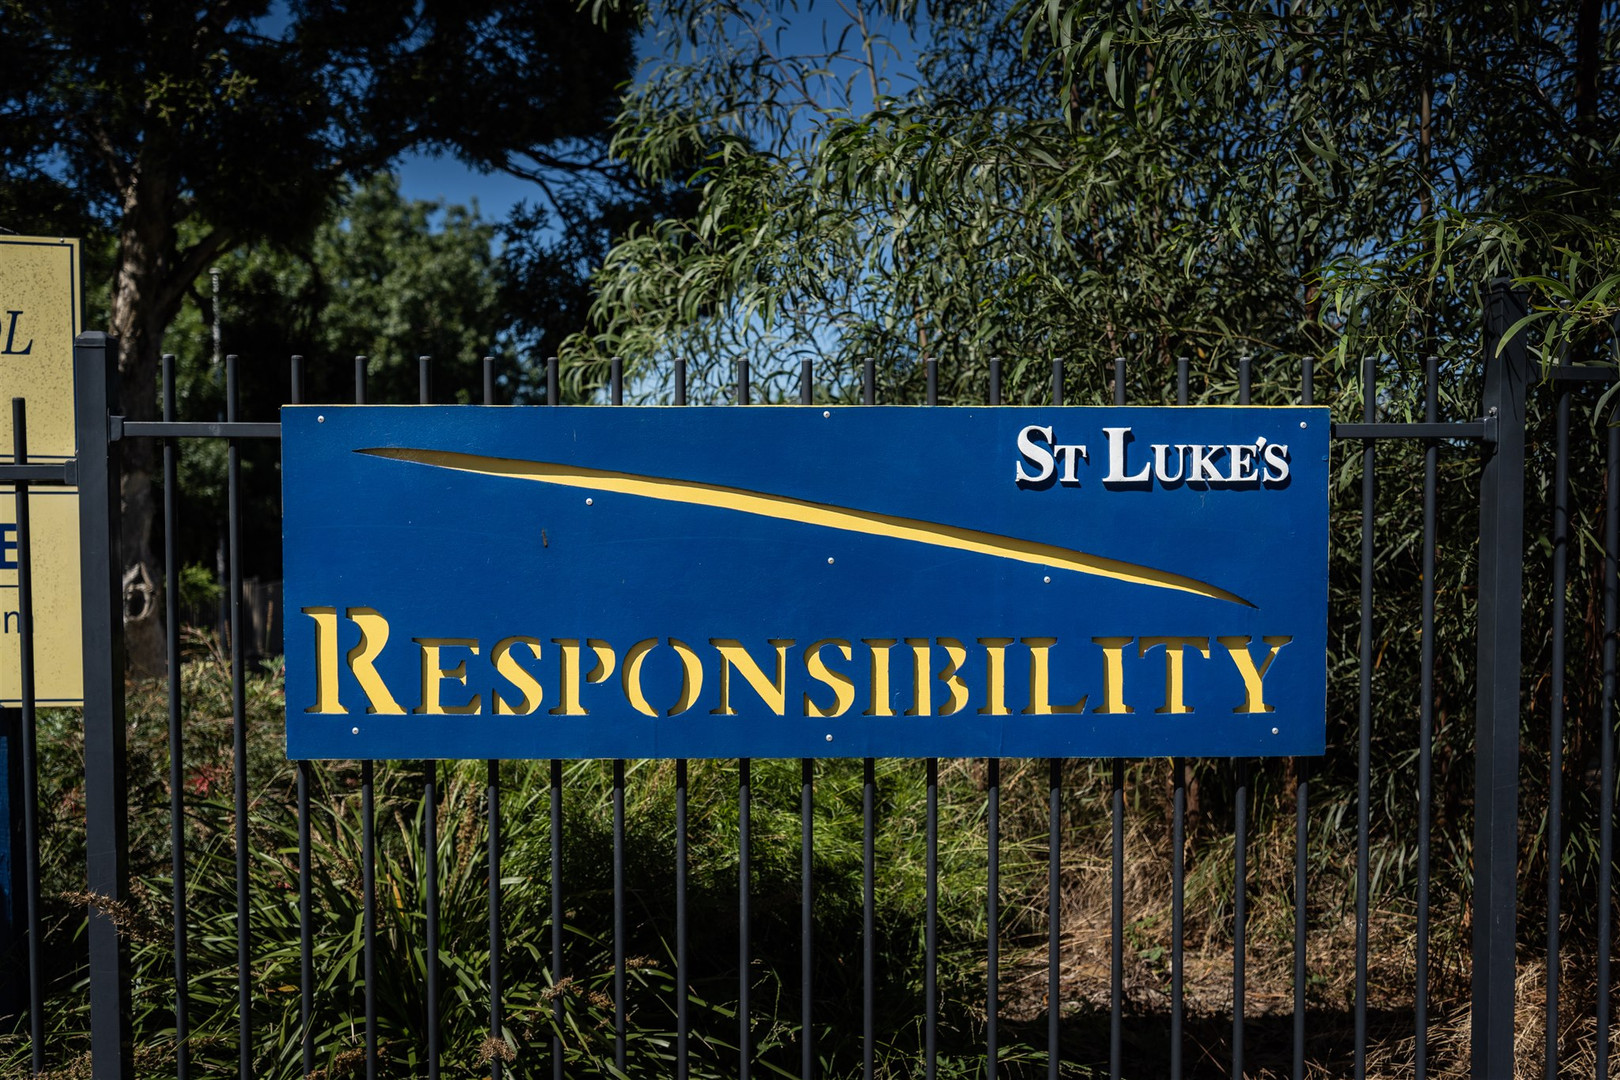 StLuke's-Wantirna-Nov2020--217.jpg